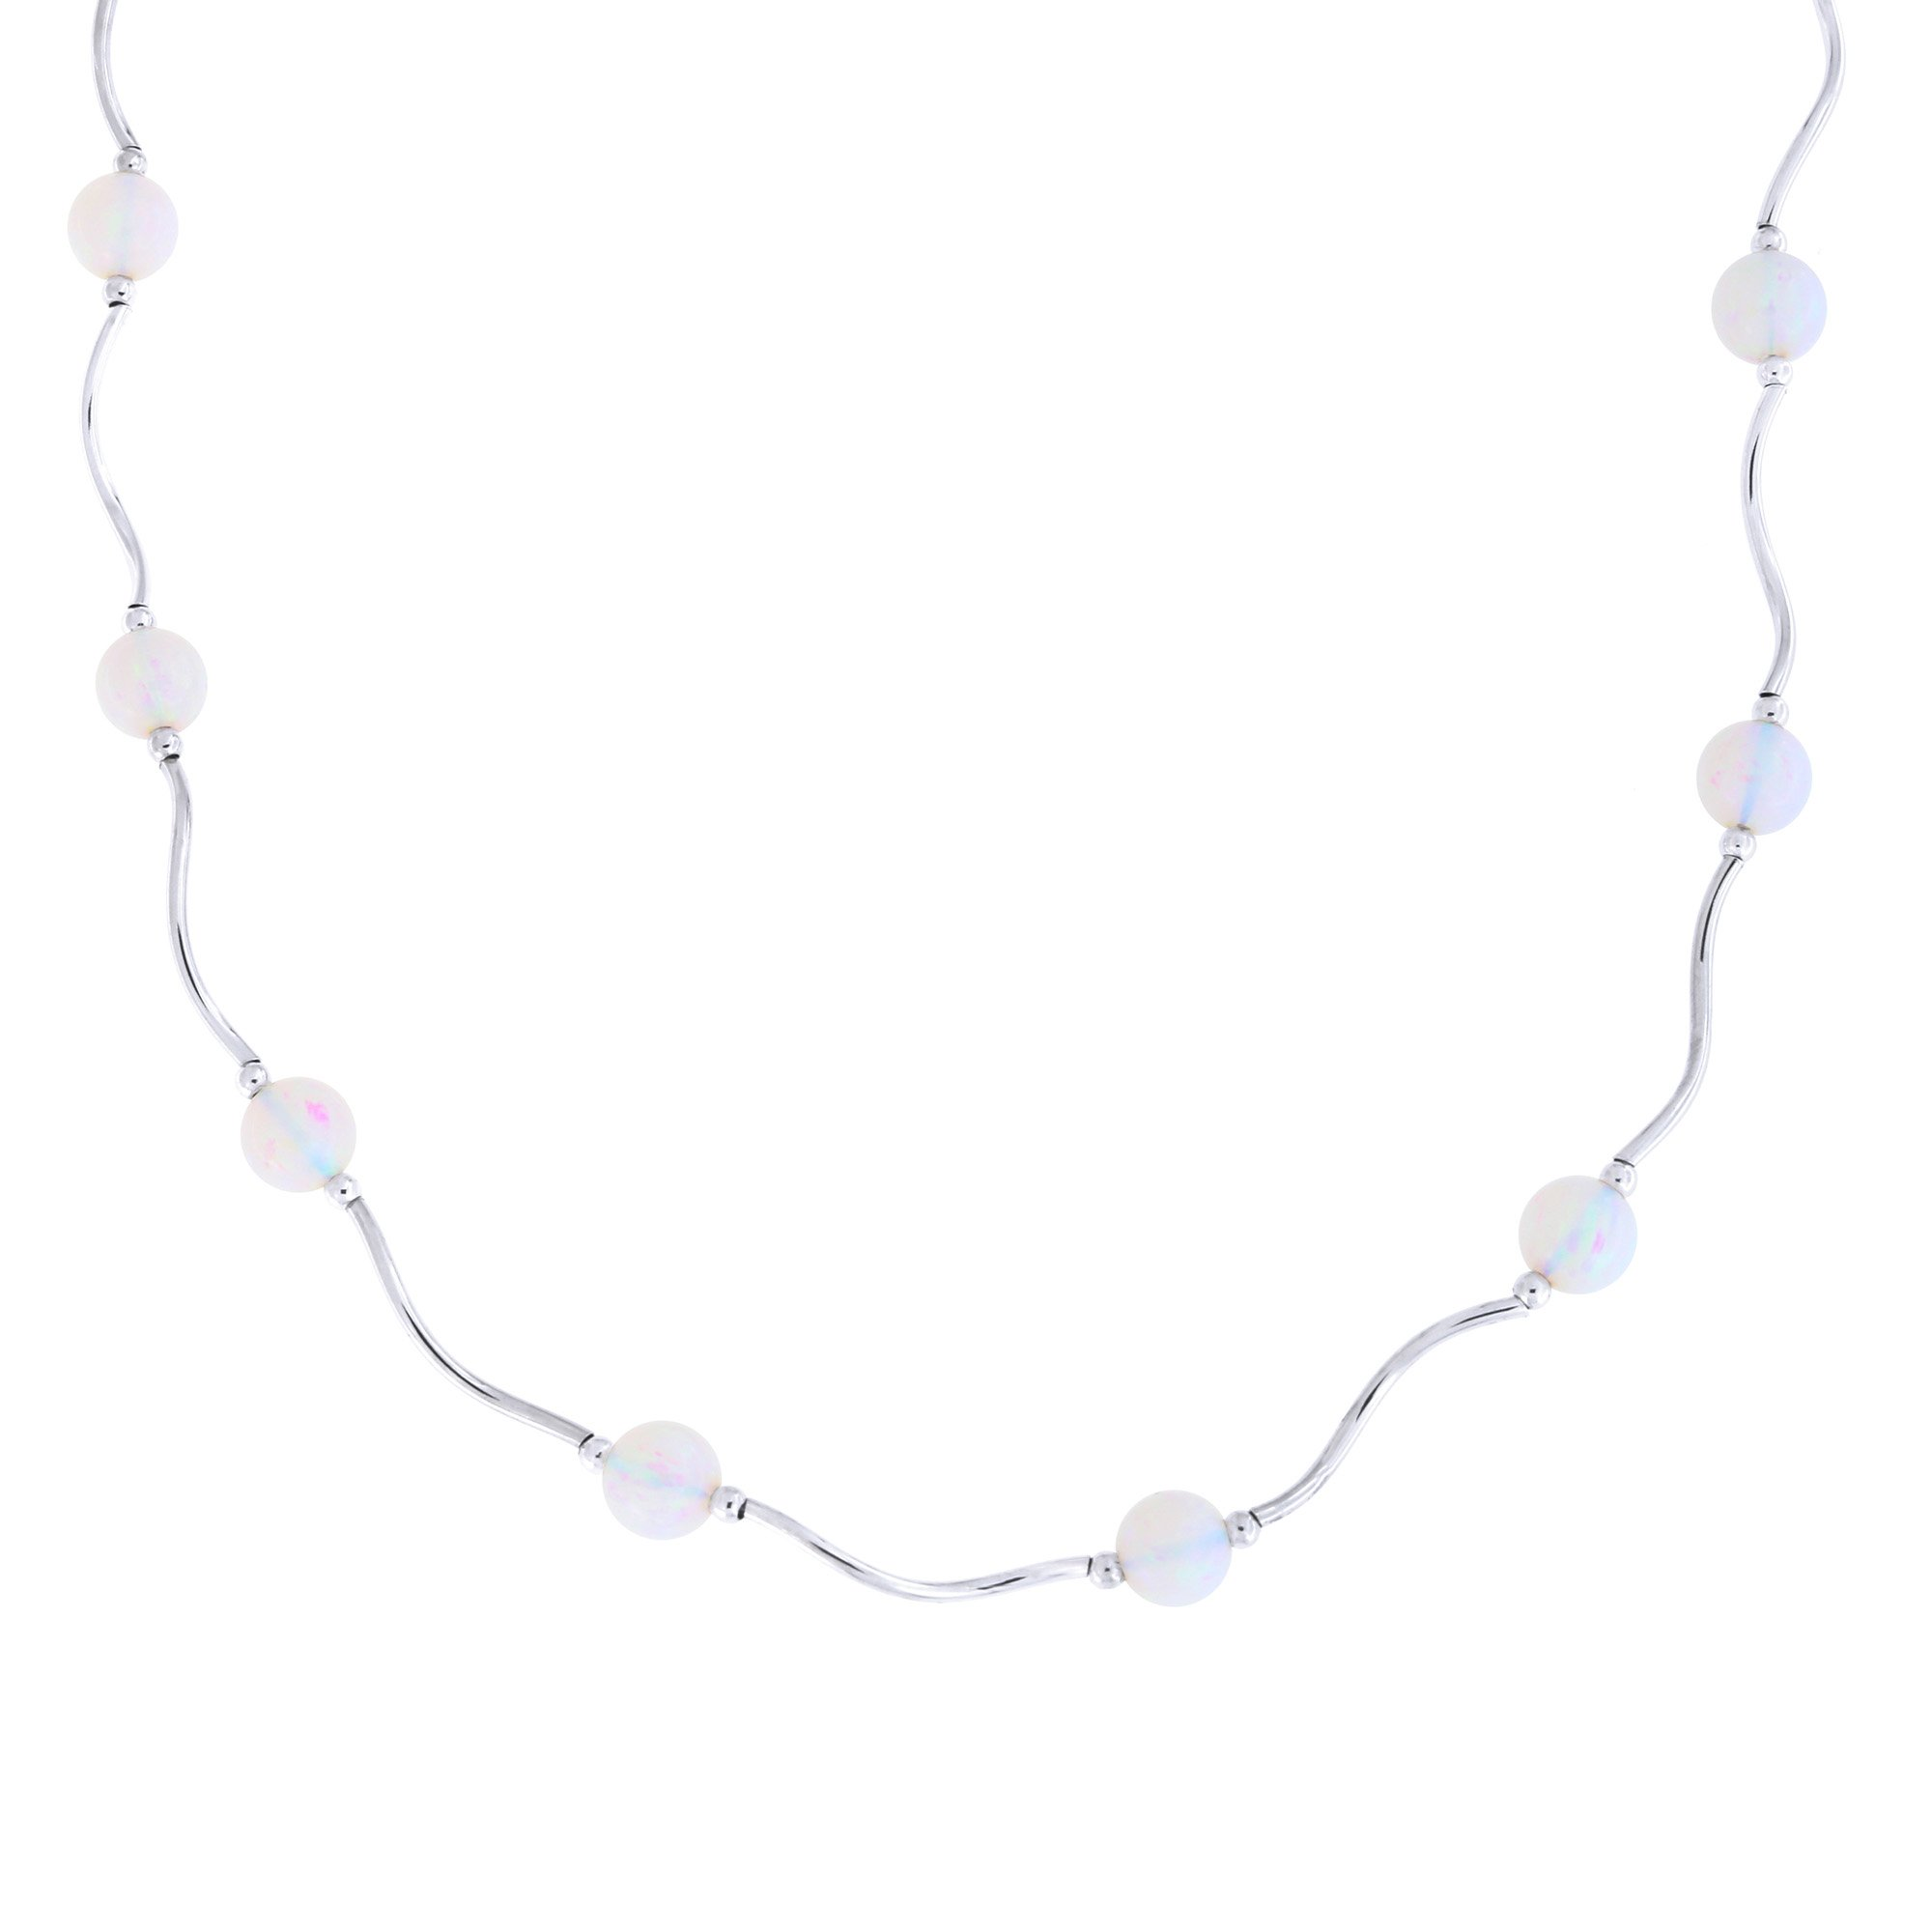 Sterling Silver Rhodium Plated 6mm Simulated White Opal Station Necklace, 17.5 inches by